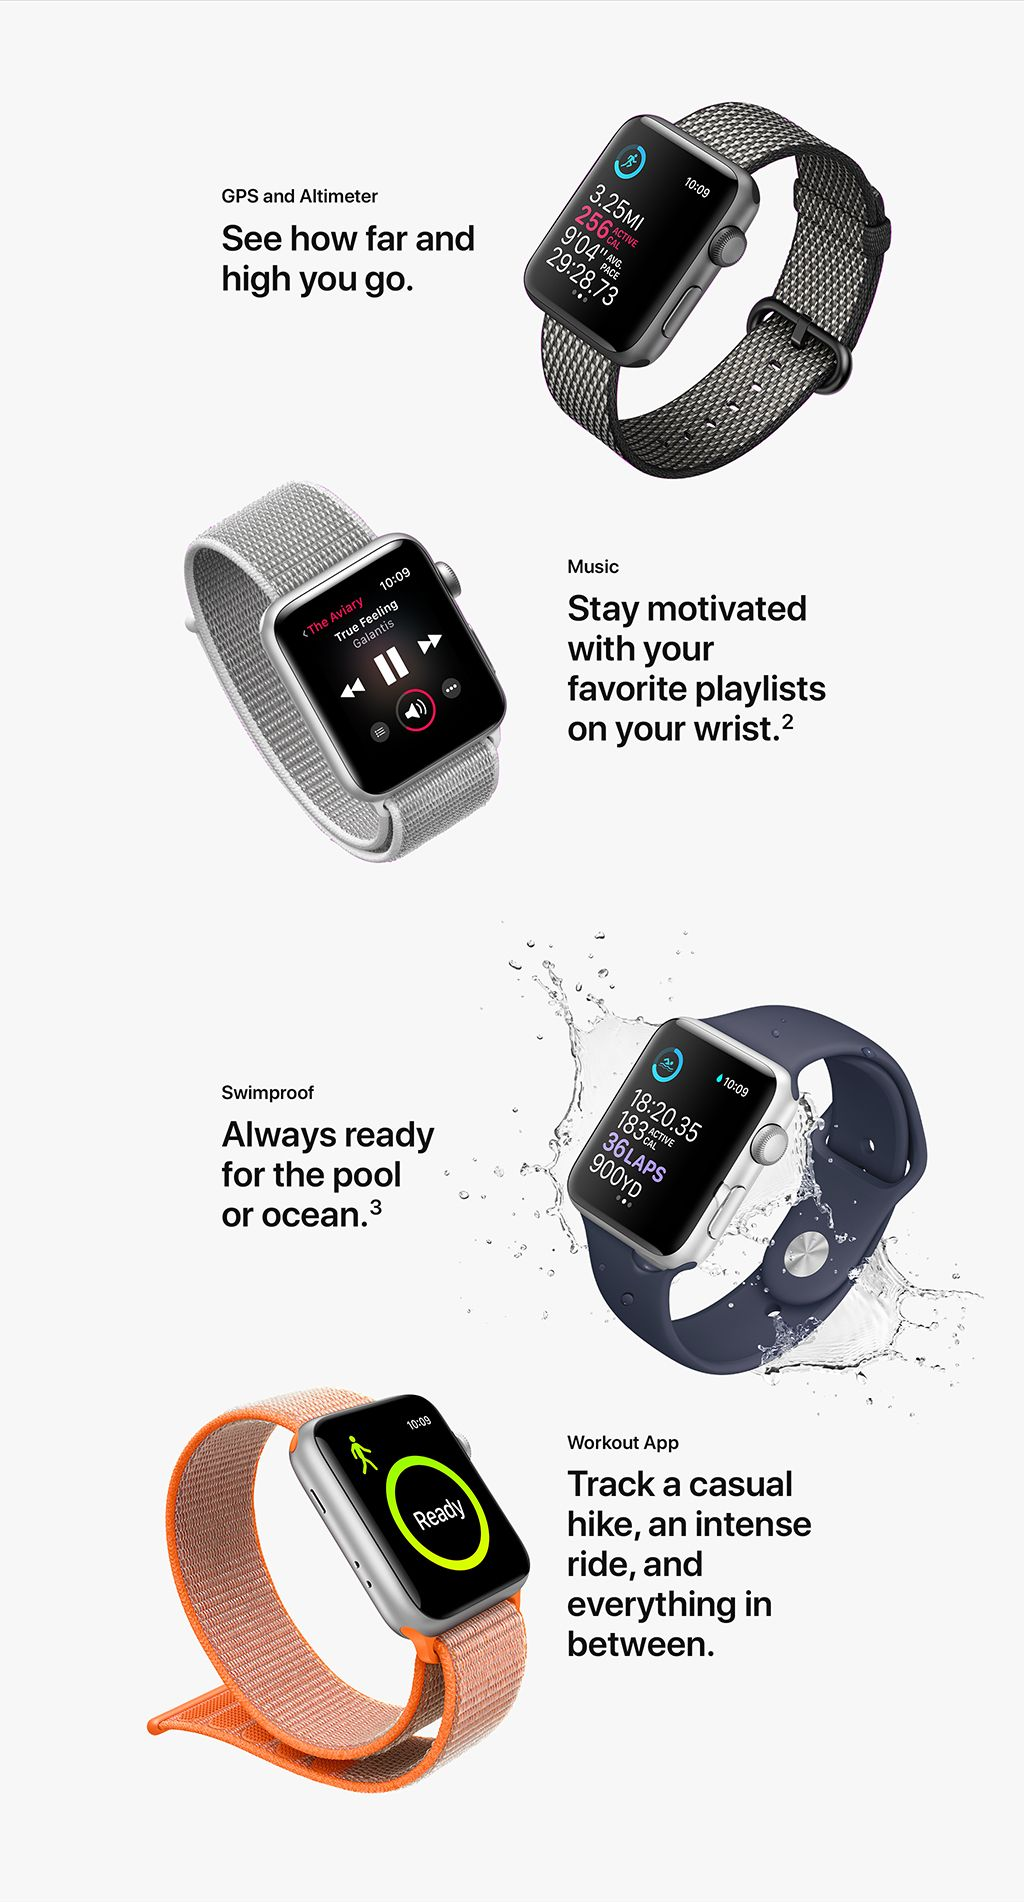 apple watch info